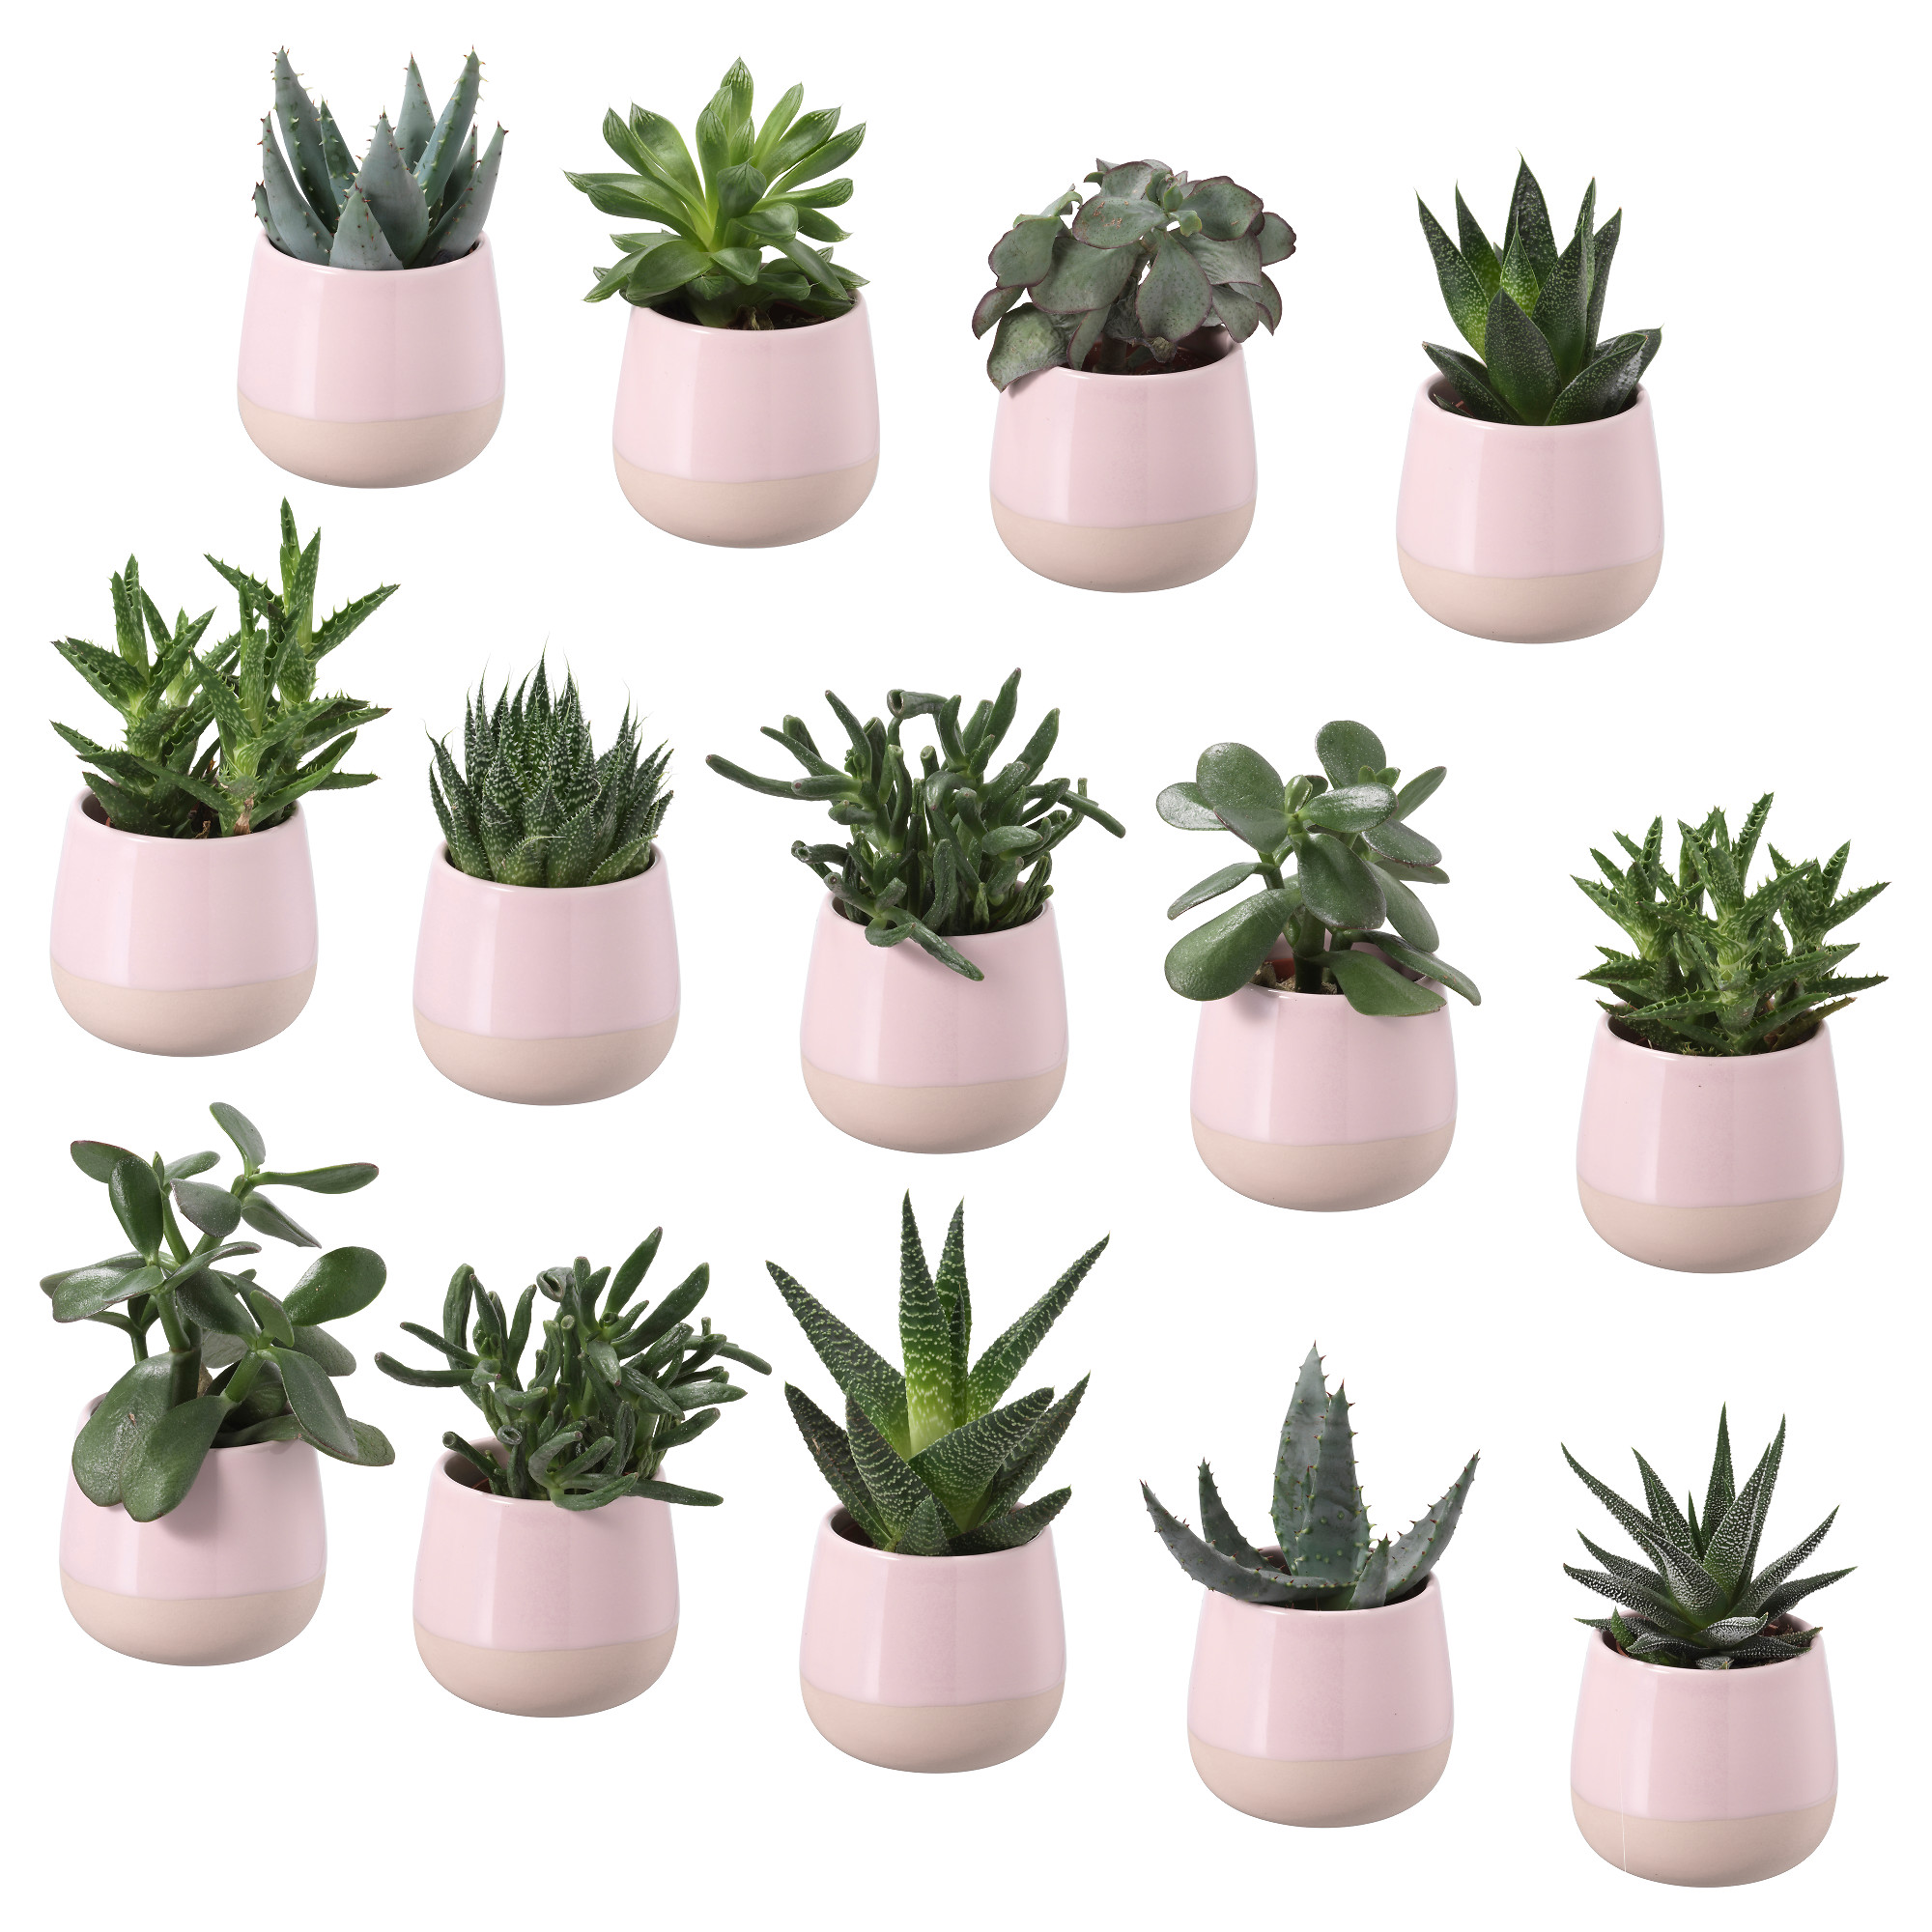 100 artificial cactus succulents in white for Faux cactus ikea